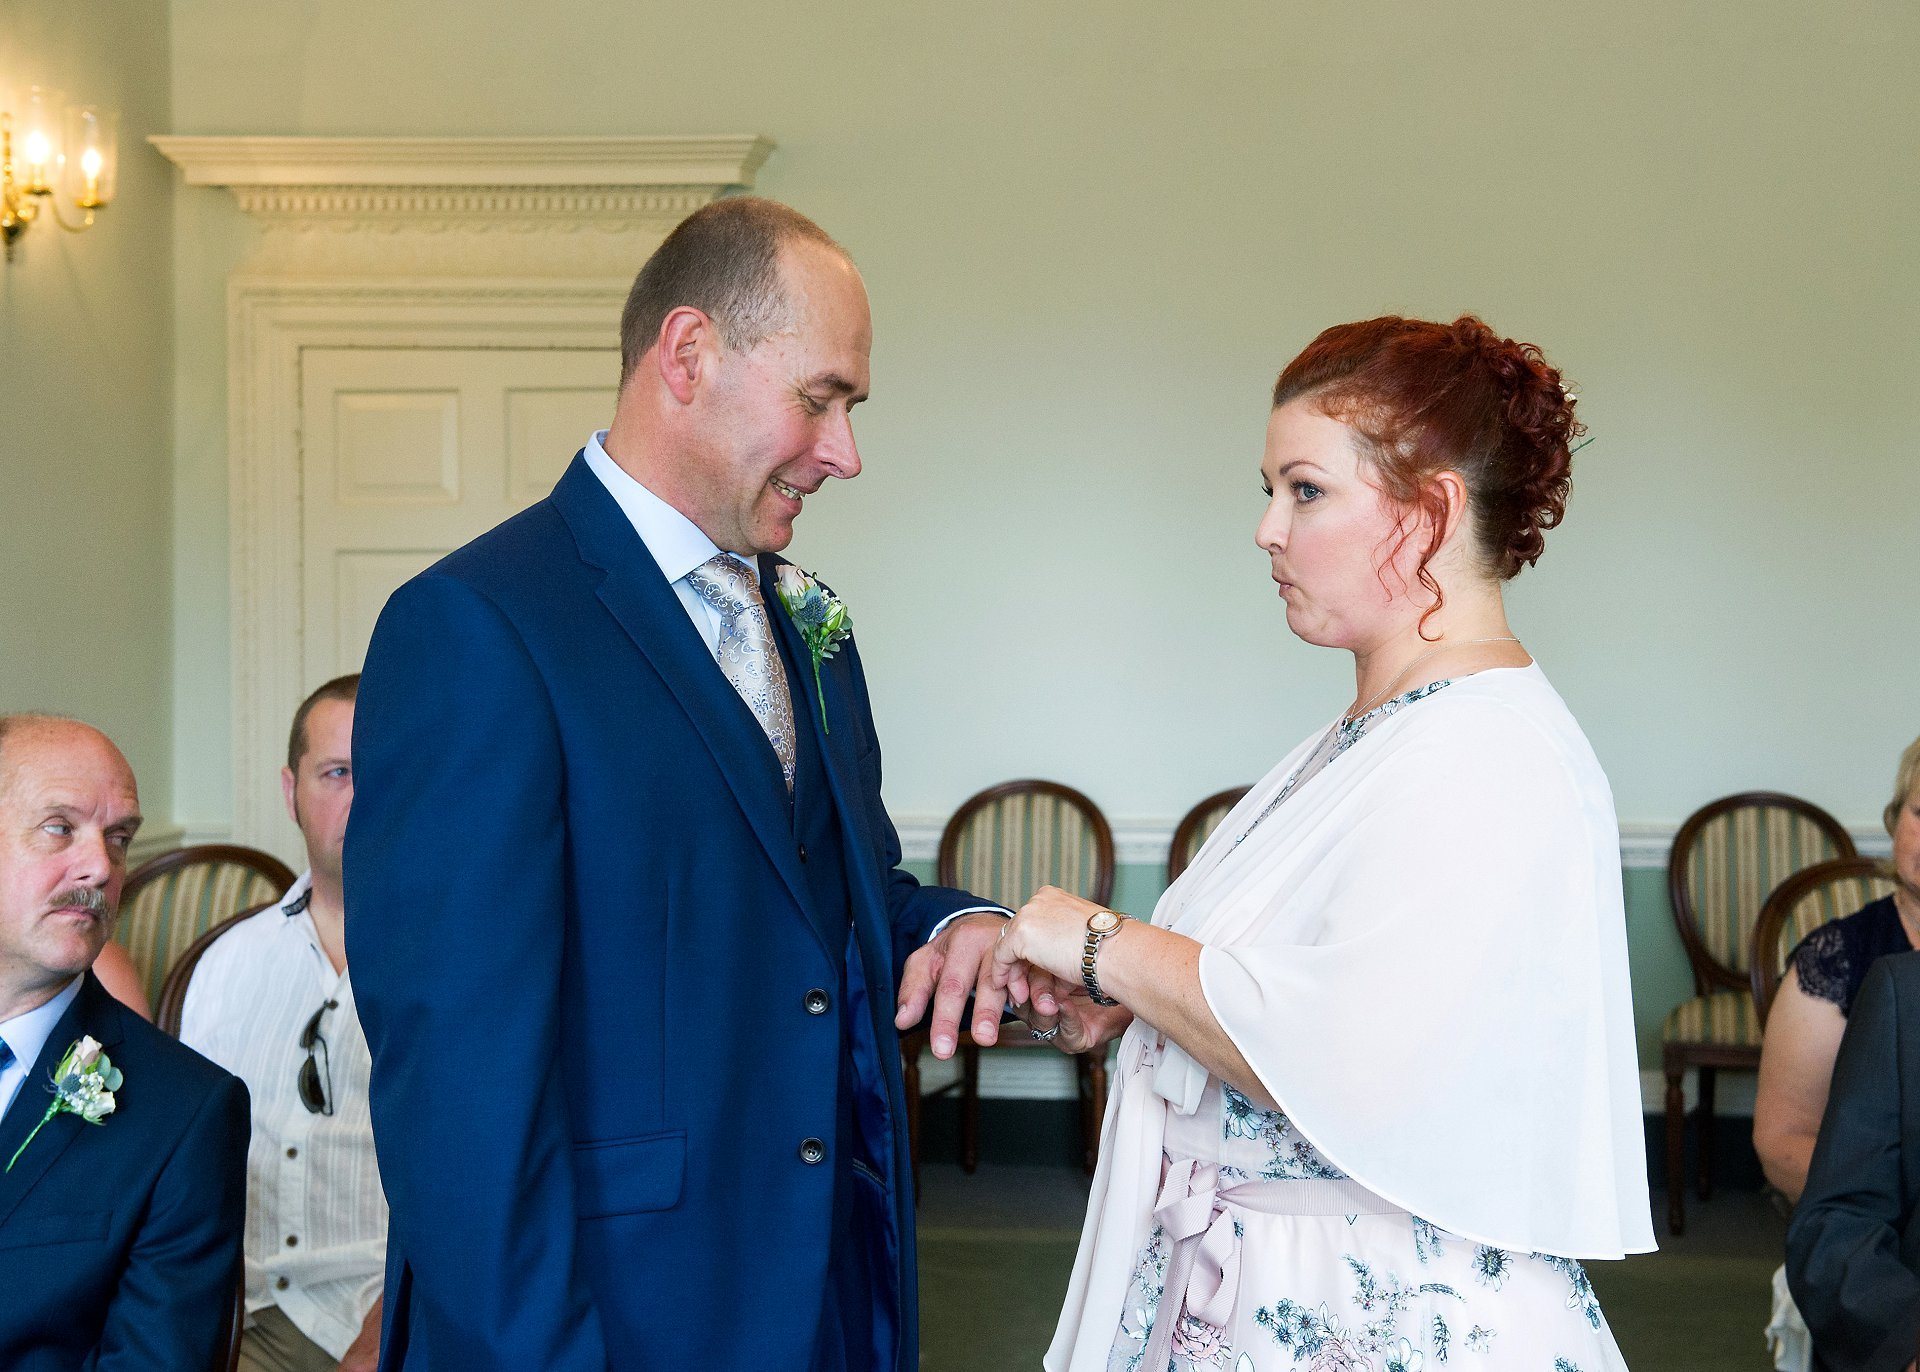 The Drawing Room ceremony venue at Horsham Register Office with a bride and groom exchanging rings and the bride giggling